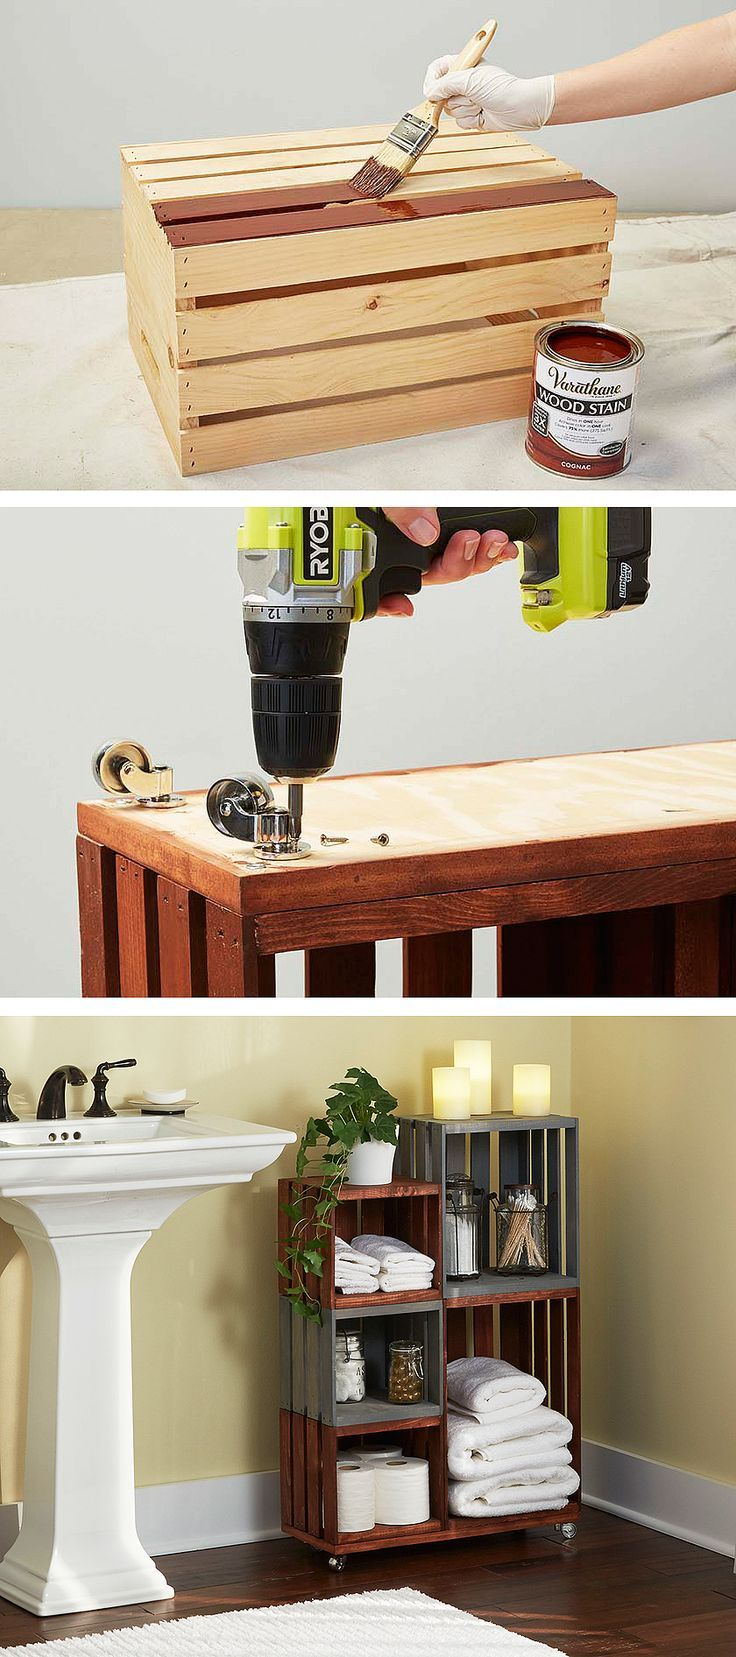 PALLET | Turn ordinary wooden crates into cool bathroom storage on wheels. Just follow our step-by-step tutorial.